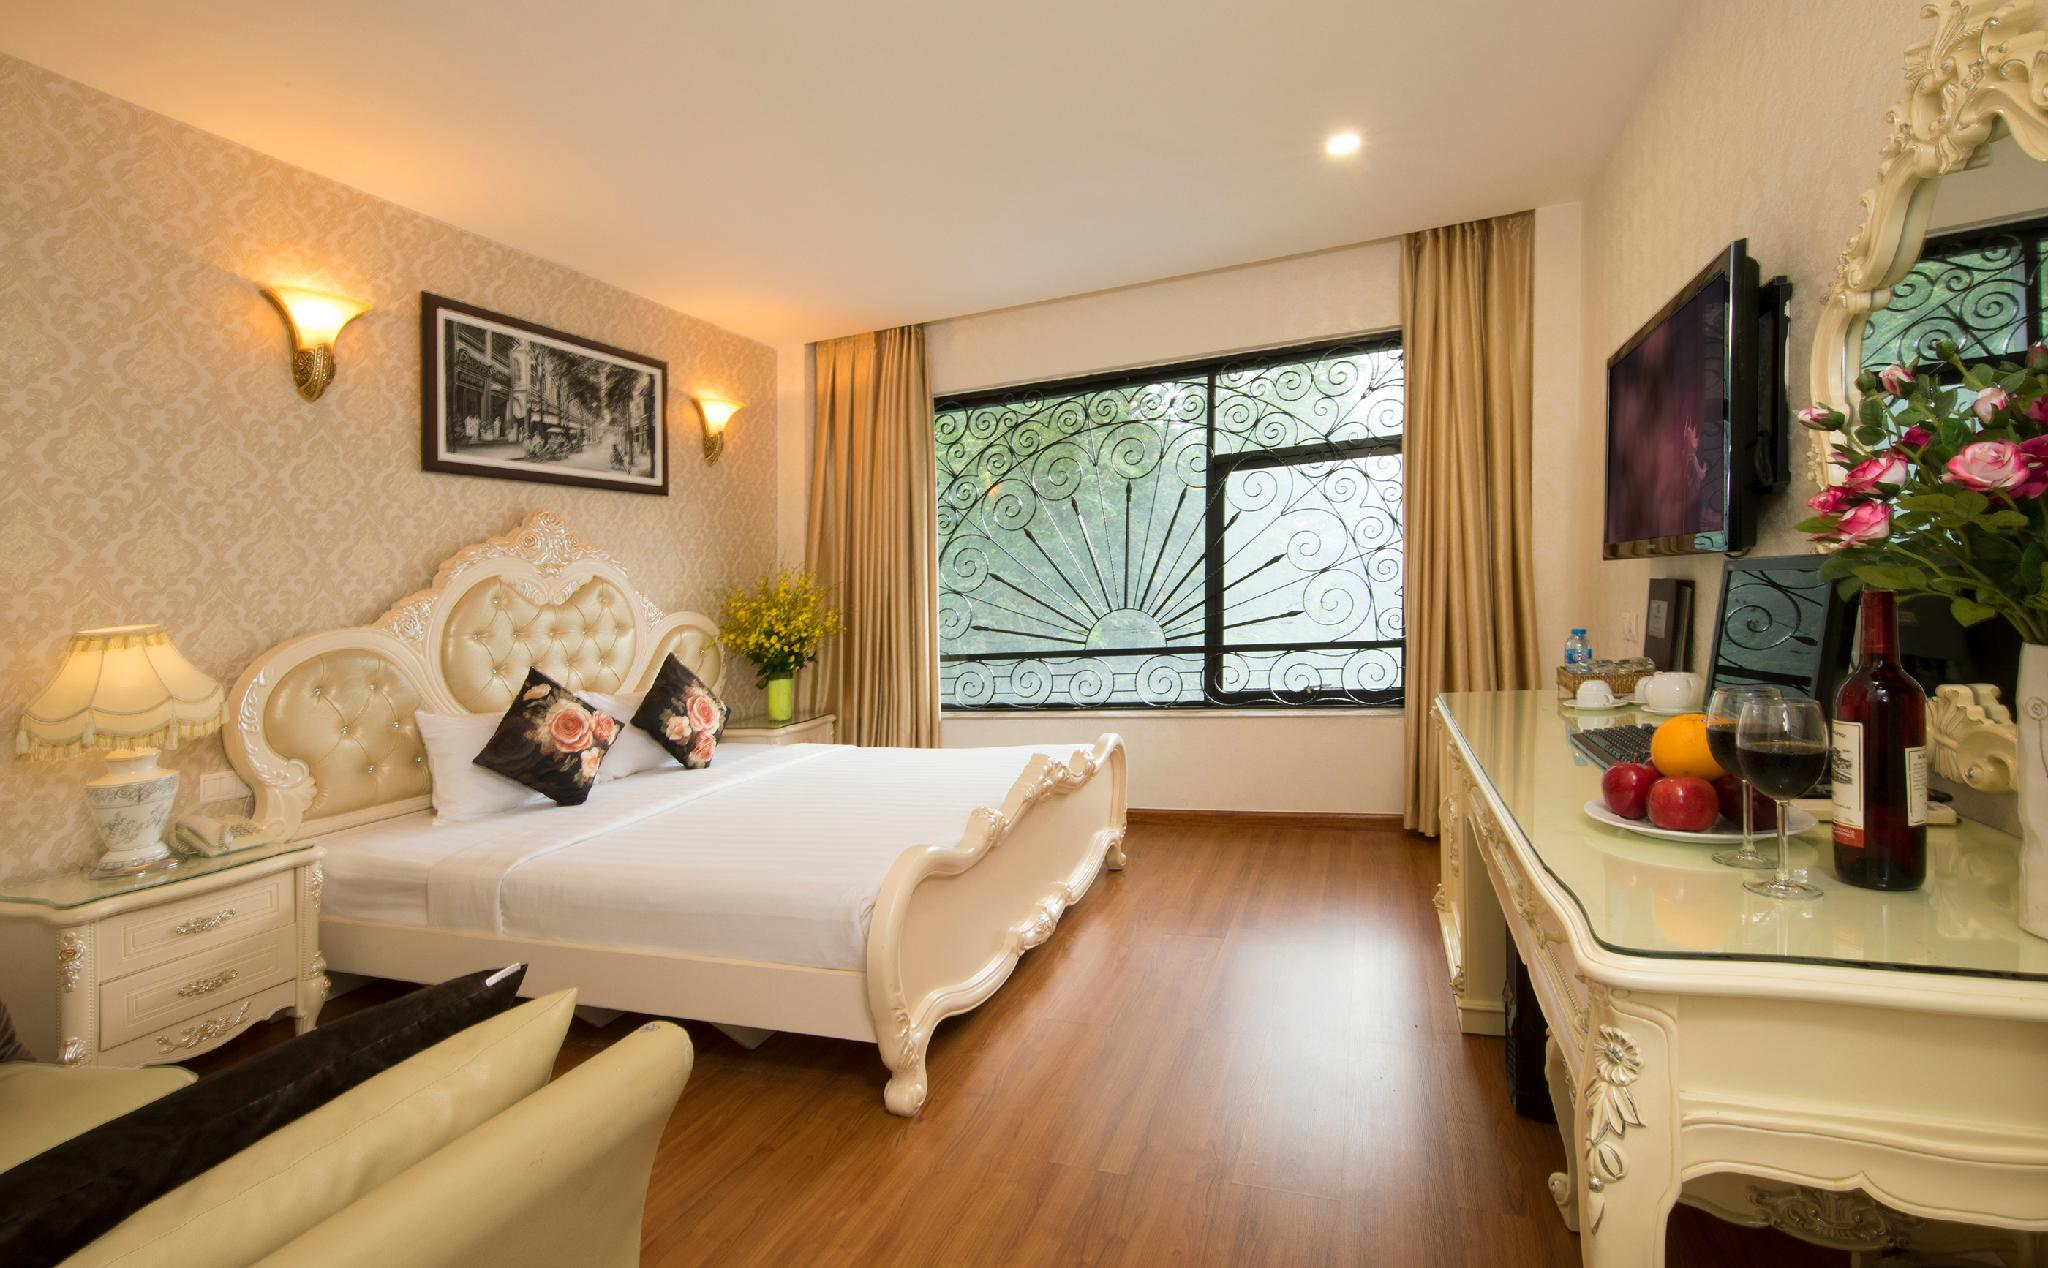 Golden Star Hotel   60 Le Thanh Ton